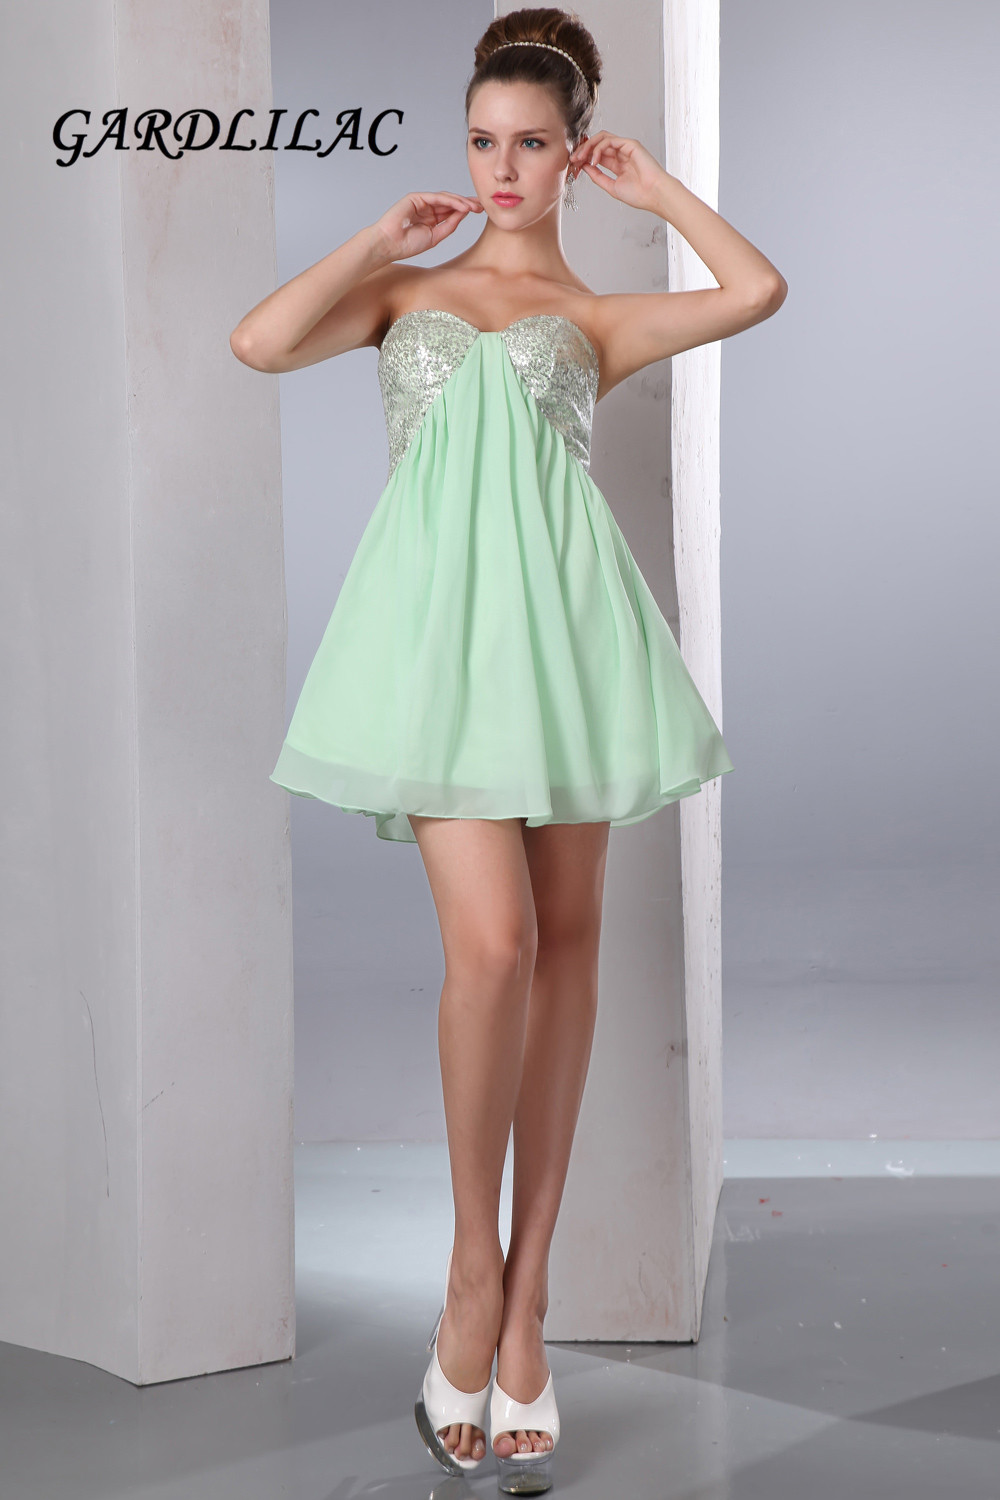 2017 Real Picture Green Short Cocktail Dress With Sequined Short Cocktail Dresses Vestidos De Coctel Abiti Da Cocktail Weddings & Events